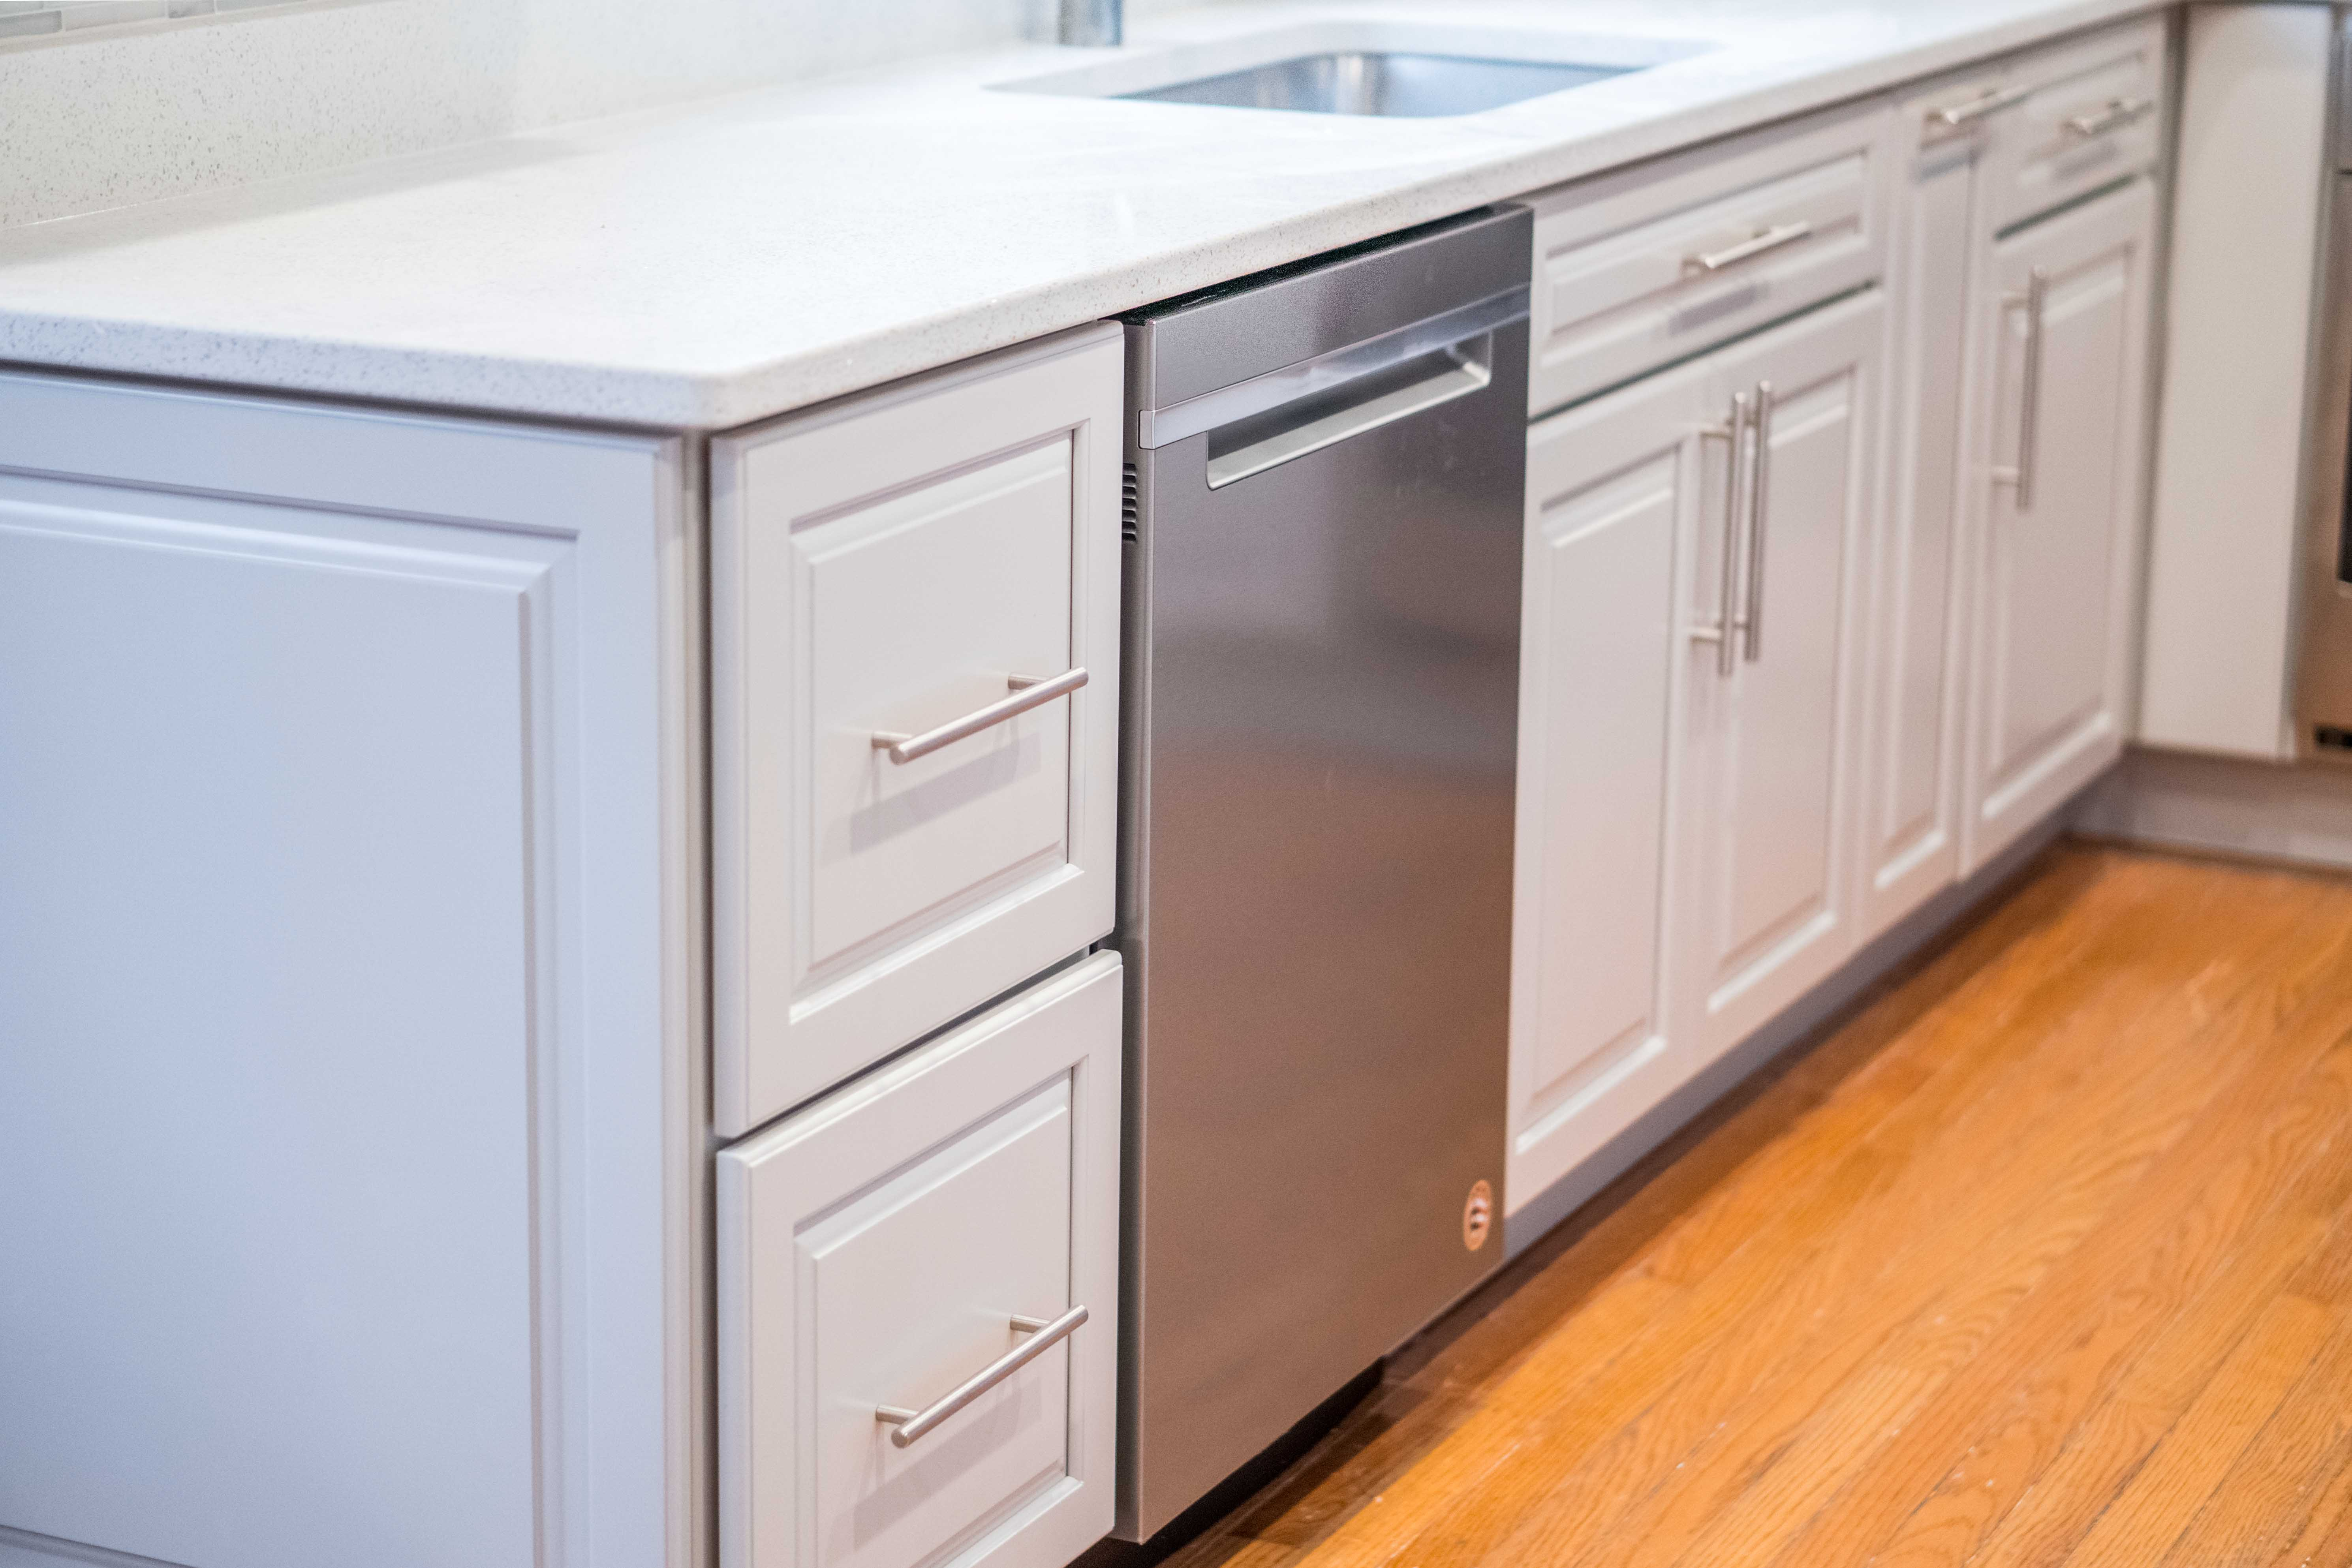 Remodeled kitchen cabinet and counter